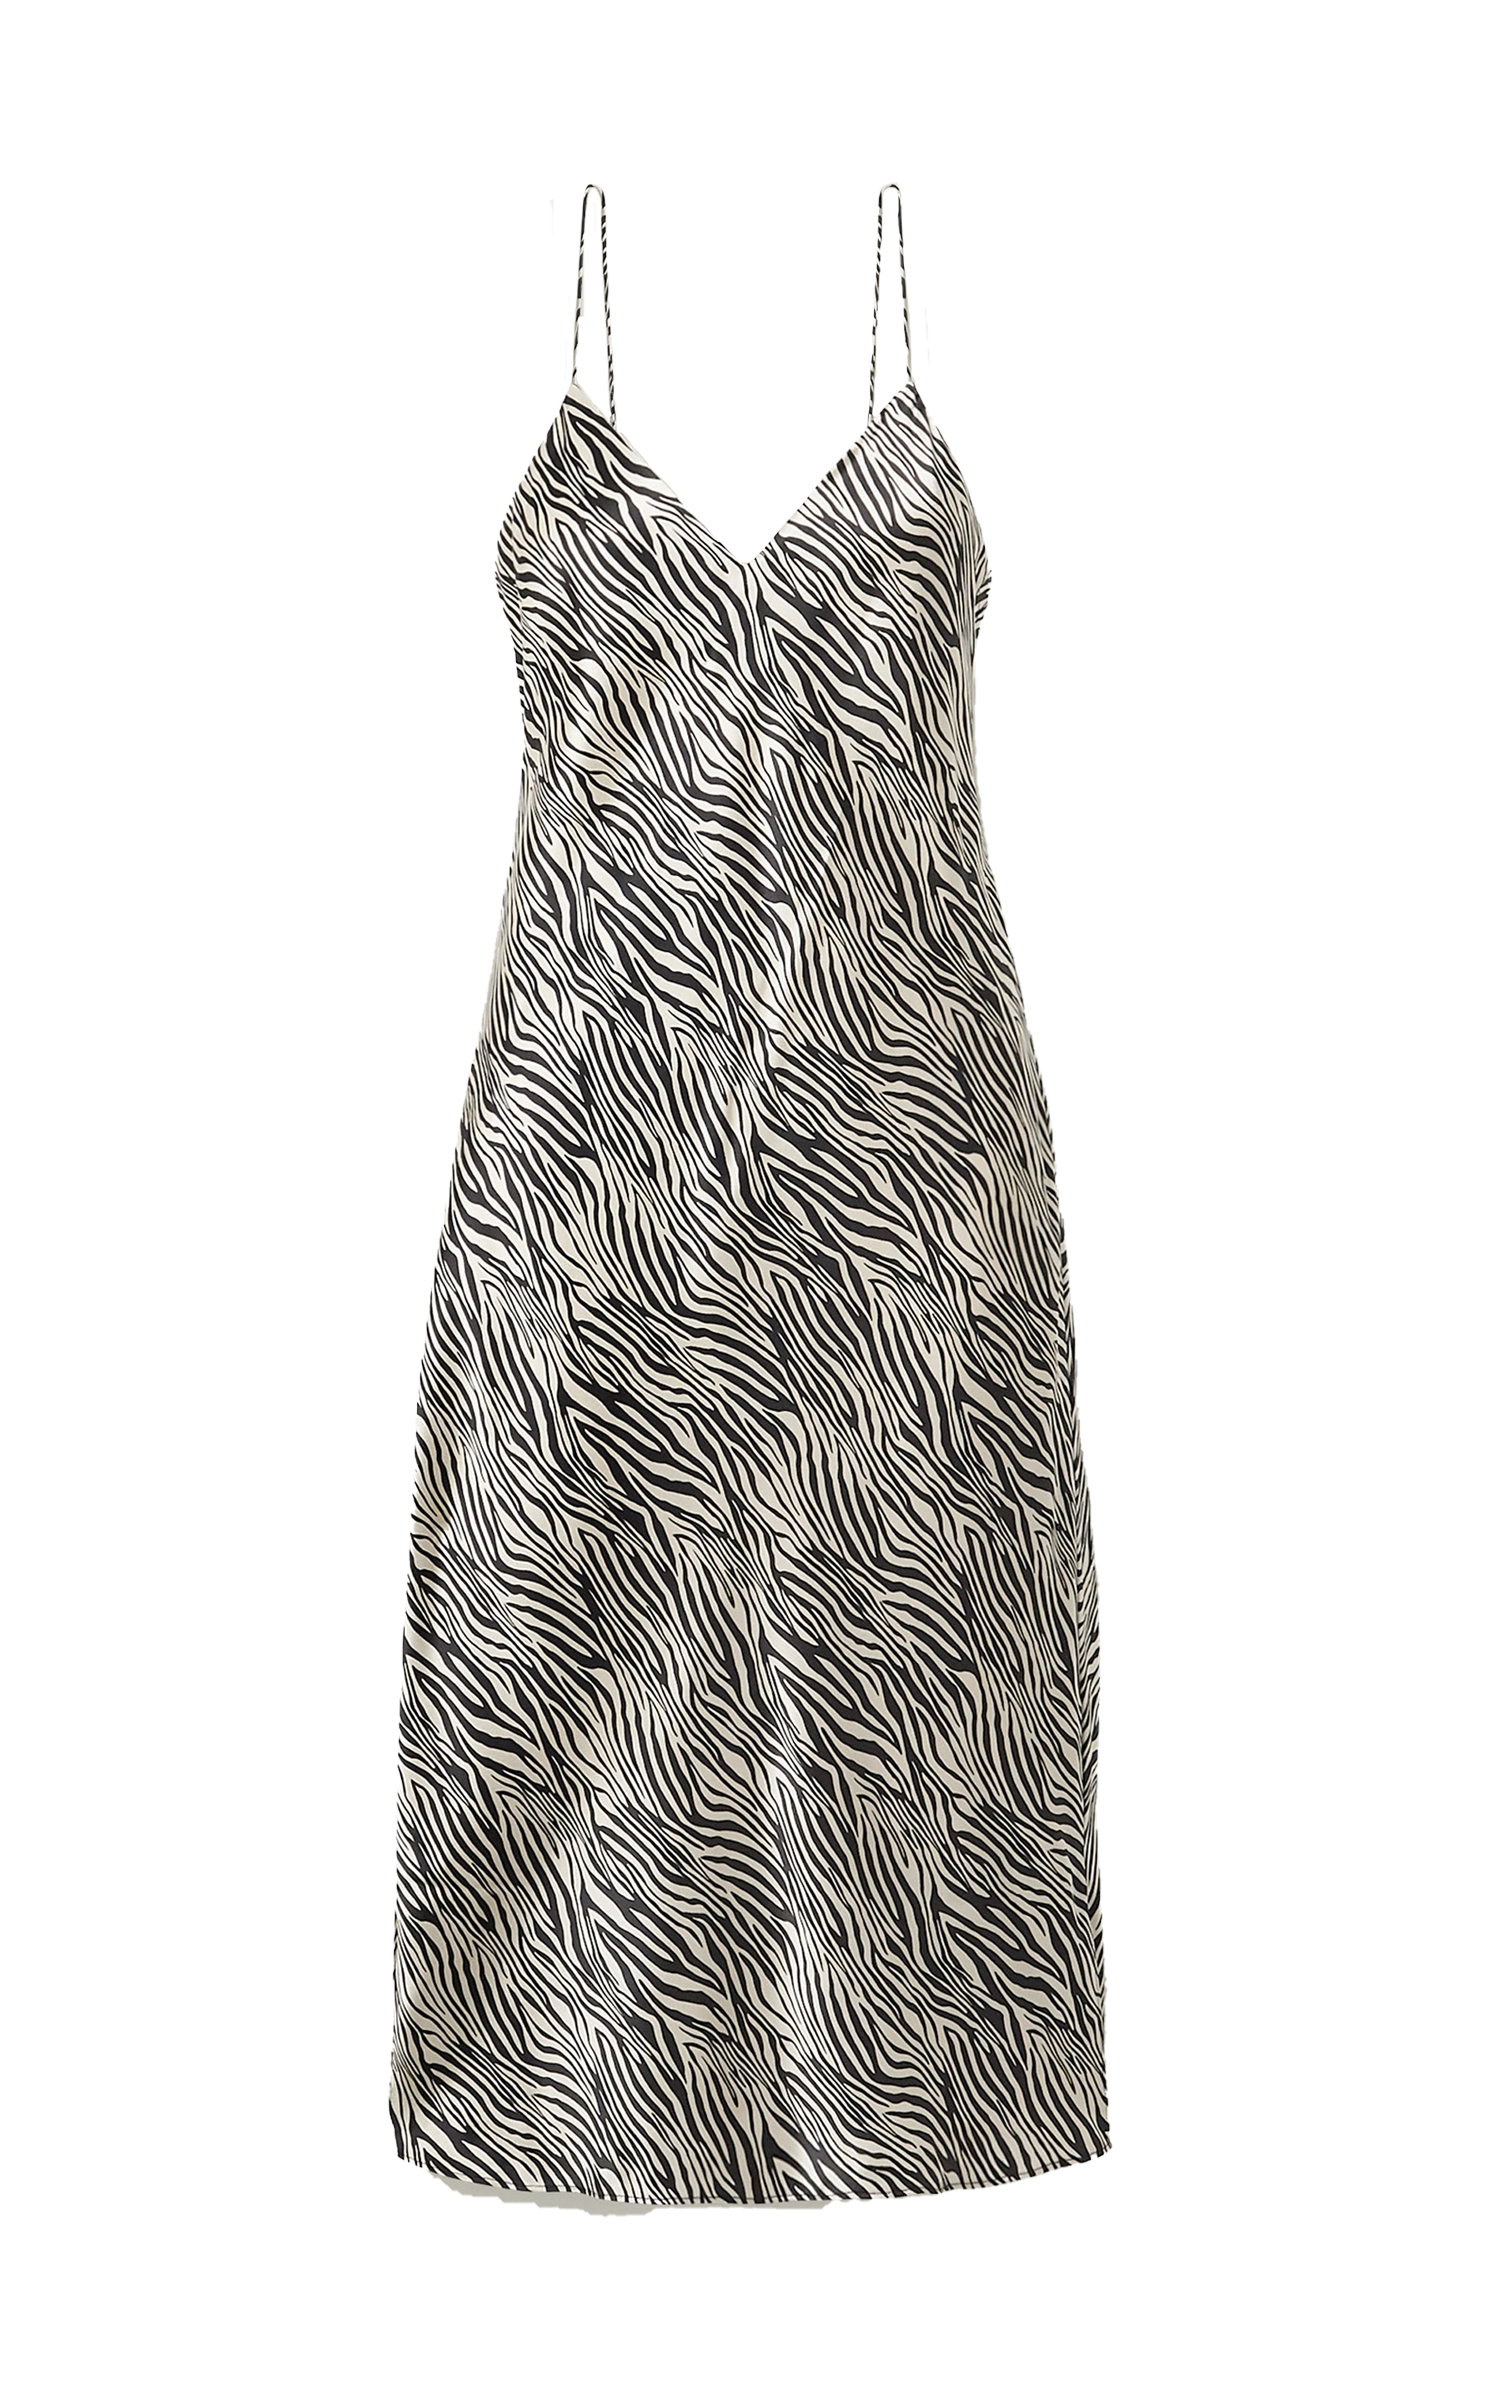 Cami NYC Raven Zebra Slip Dress